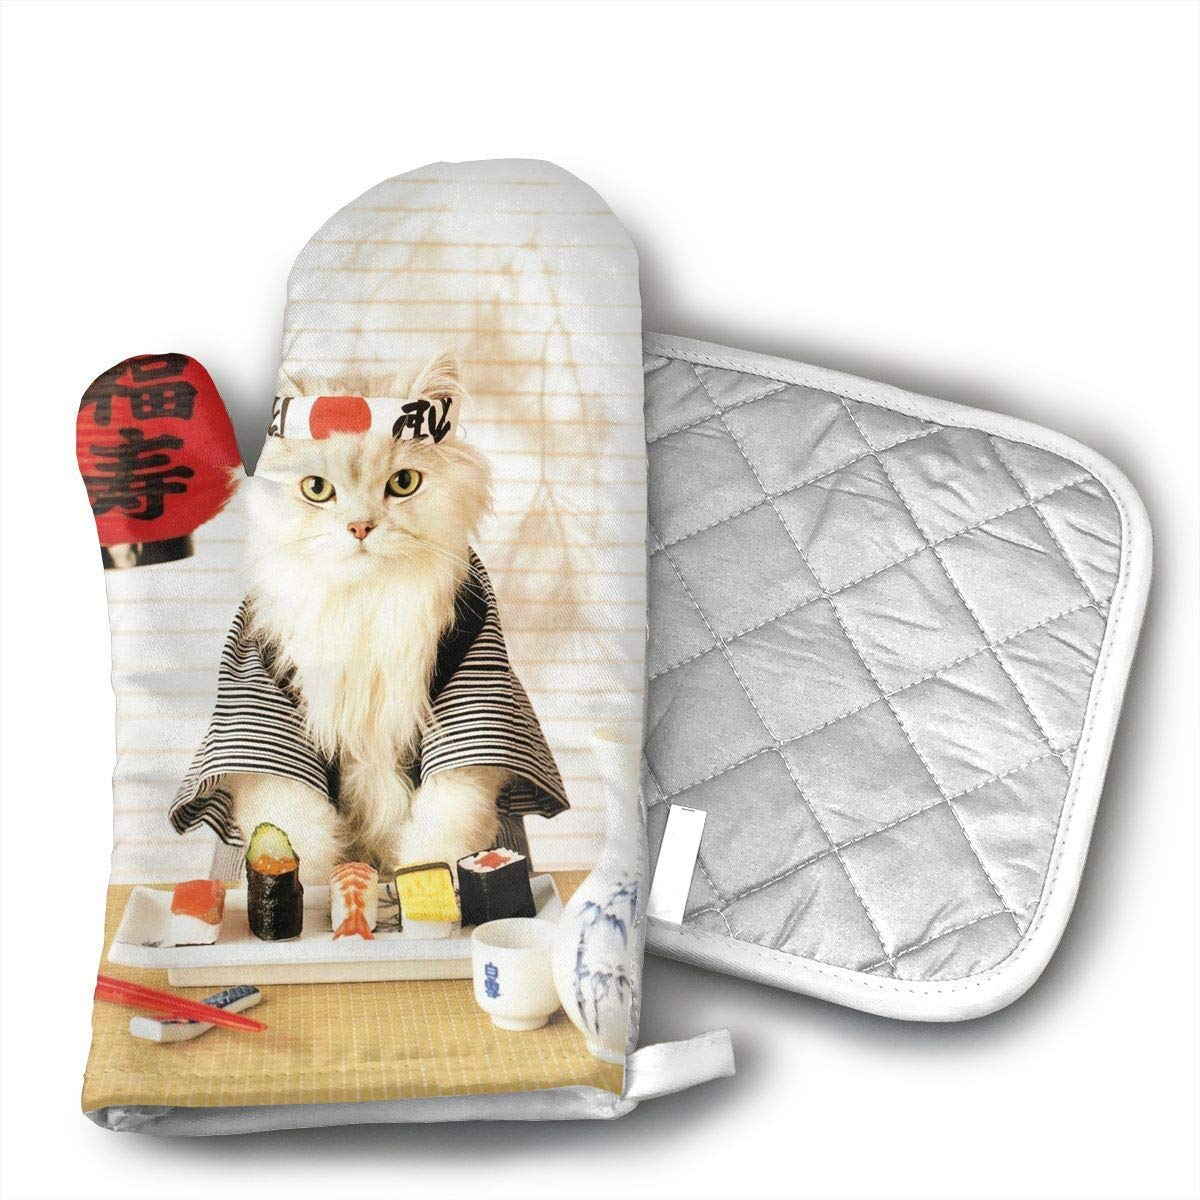 Sushi Cat Japanese Cute Funny Kitten Kitchen Oven Mitts,Professional Heat Resistant Microwave BBQ Oven Insulation Thickening Cotton Gloves Baking Pot Mitts Soft Inner Lining Kitchen Cooking